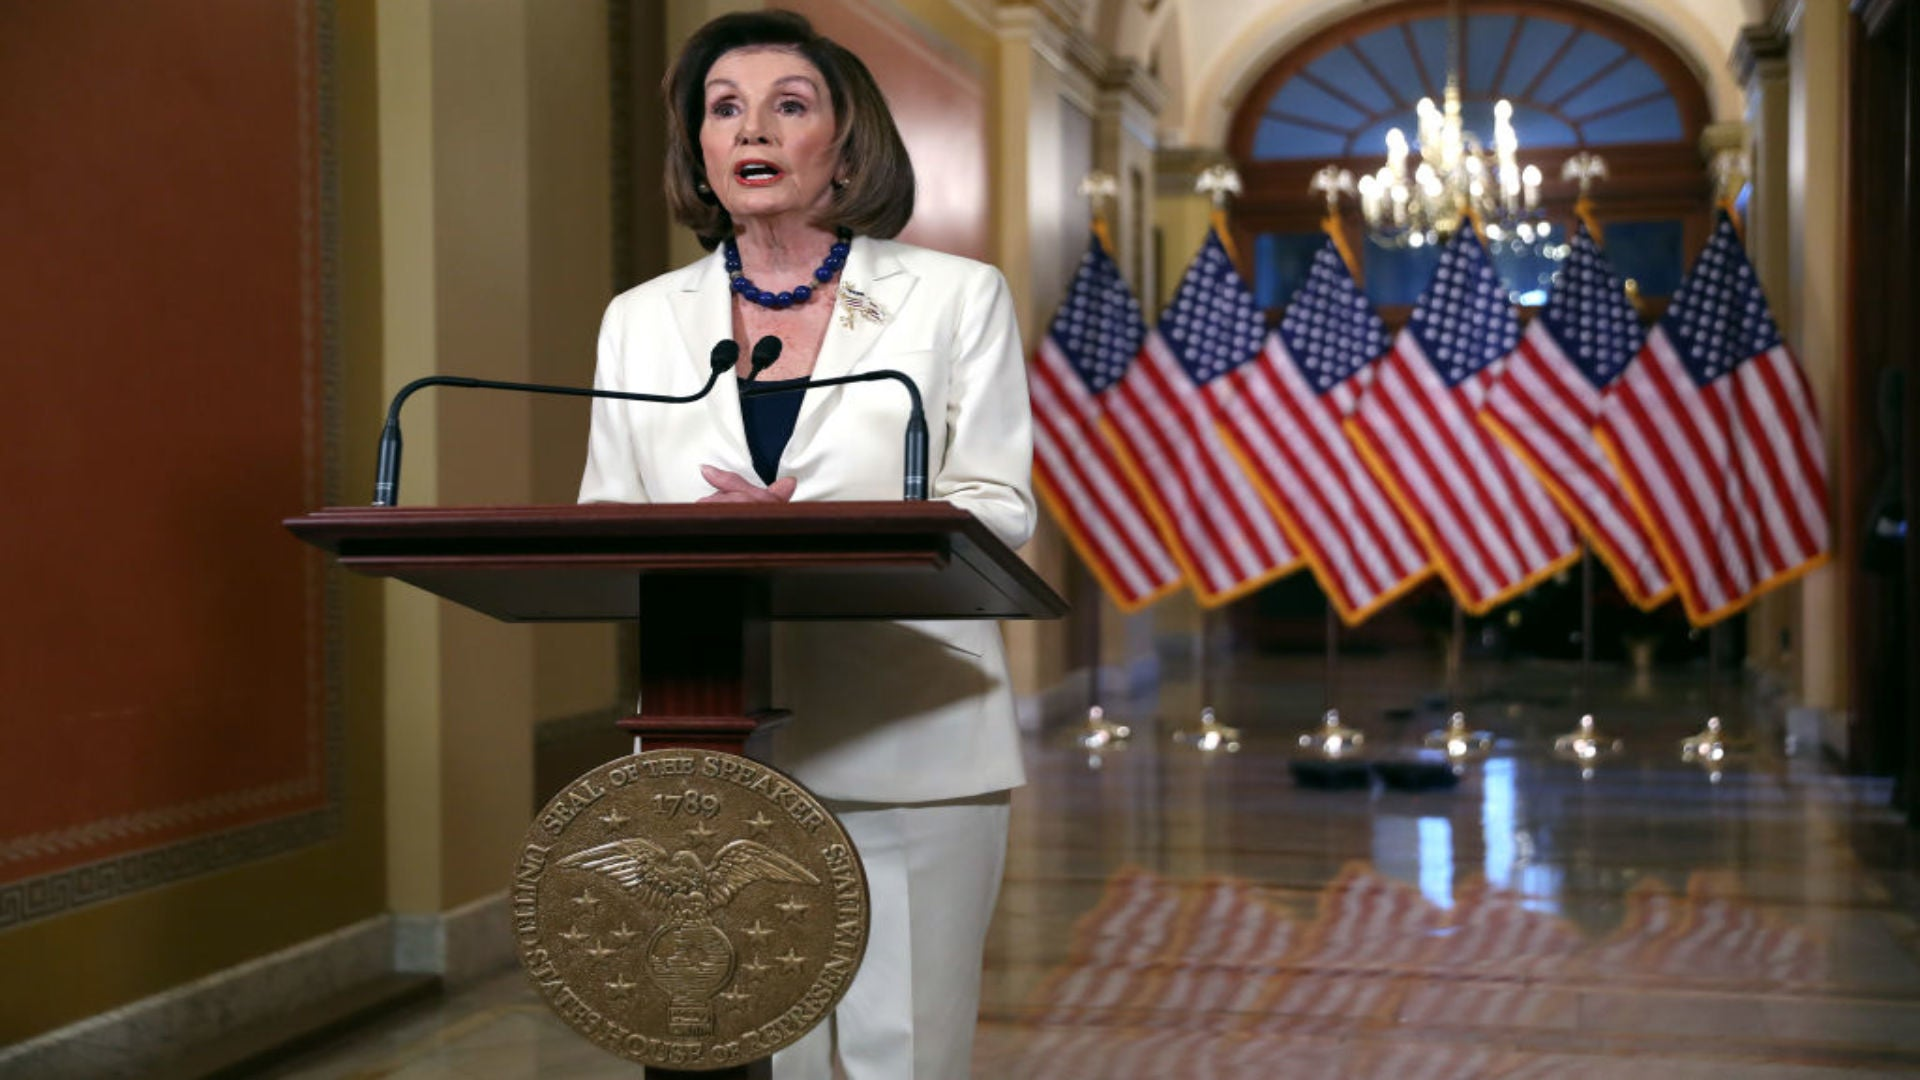 Pelosi: House To Move Forward With Articles Of Impeachment Against Trump